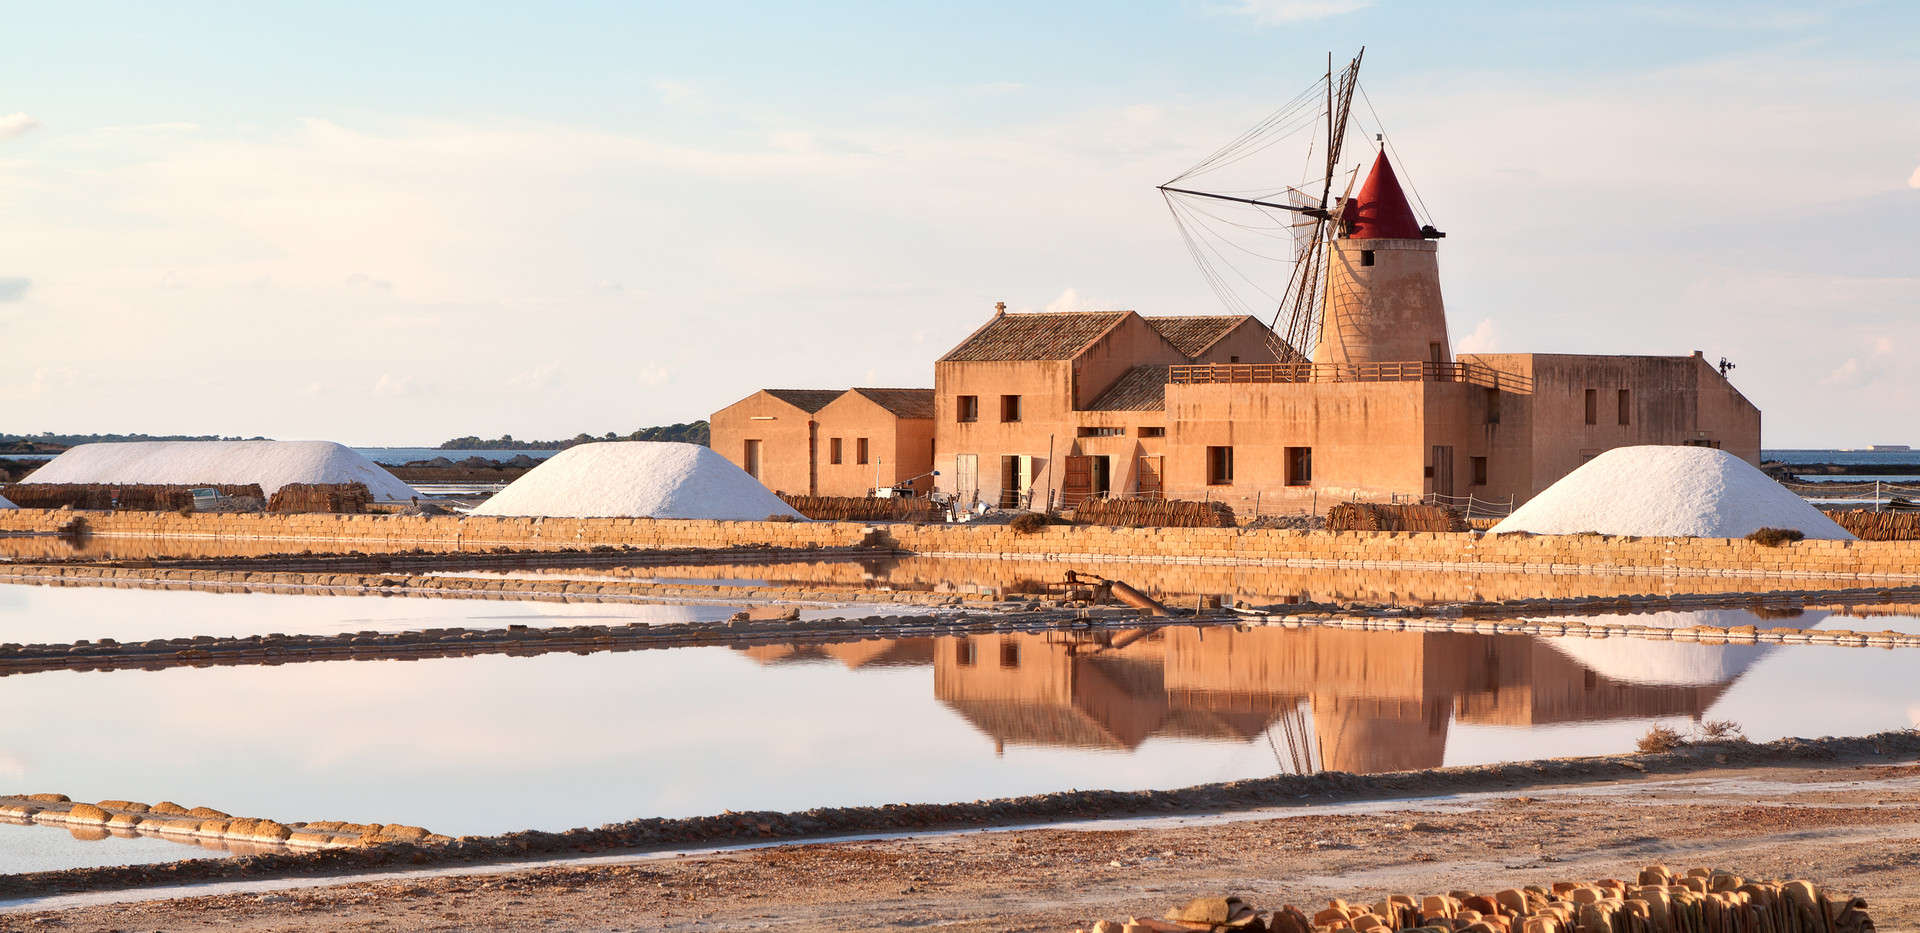 Windmühle in den Marsala Salt Flats.jpg